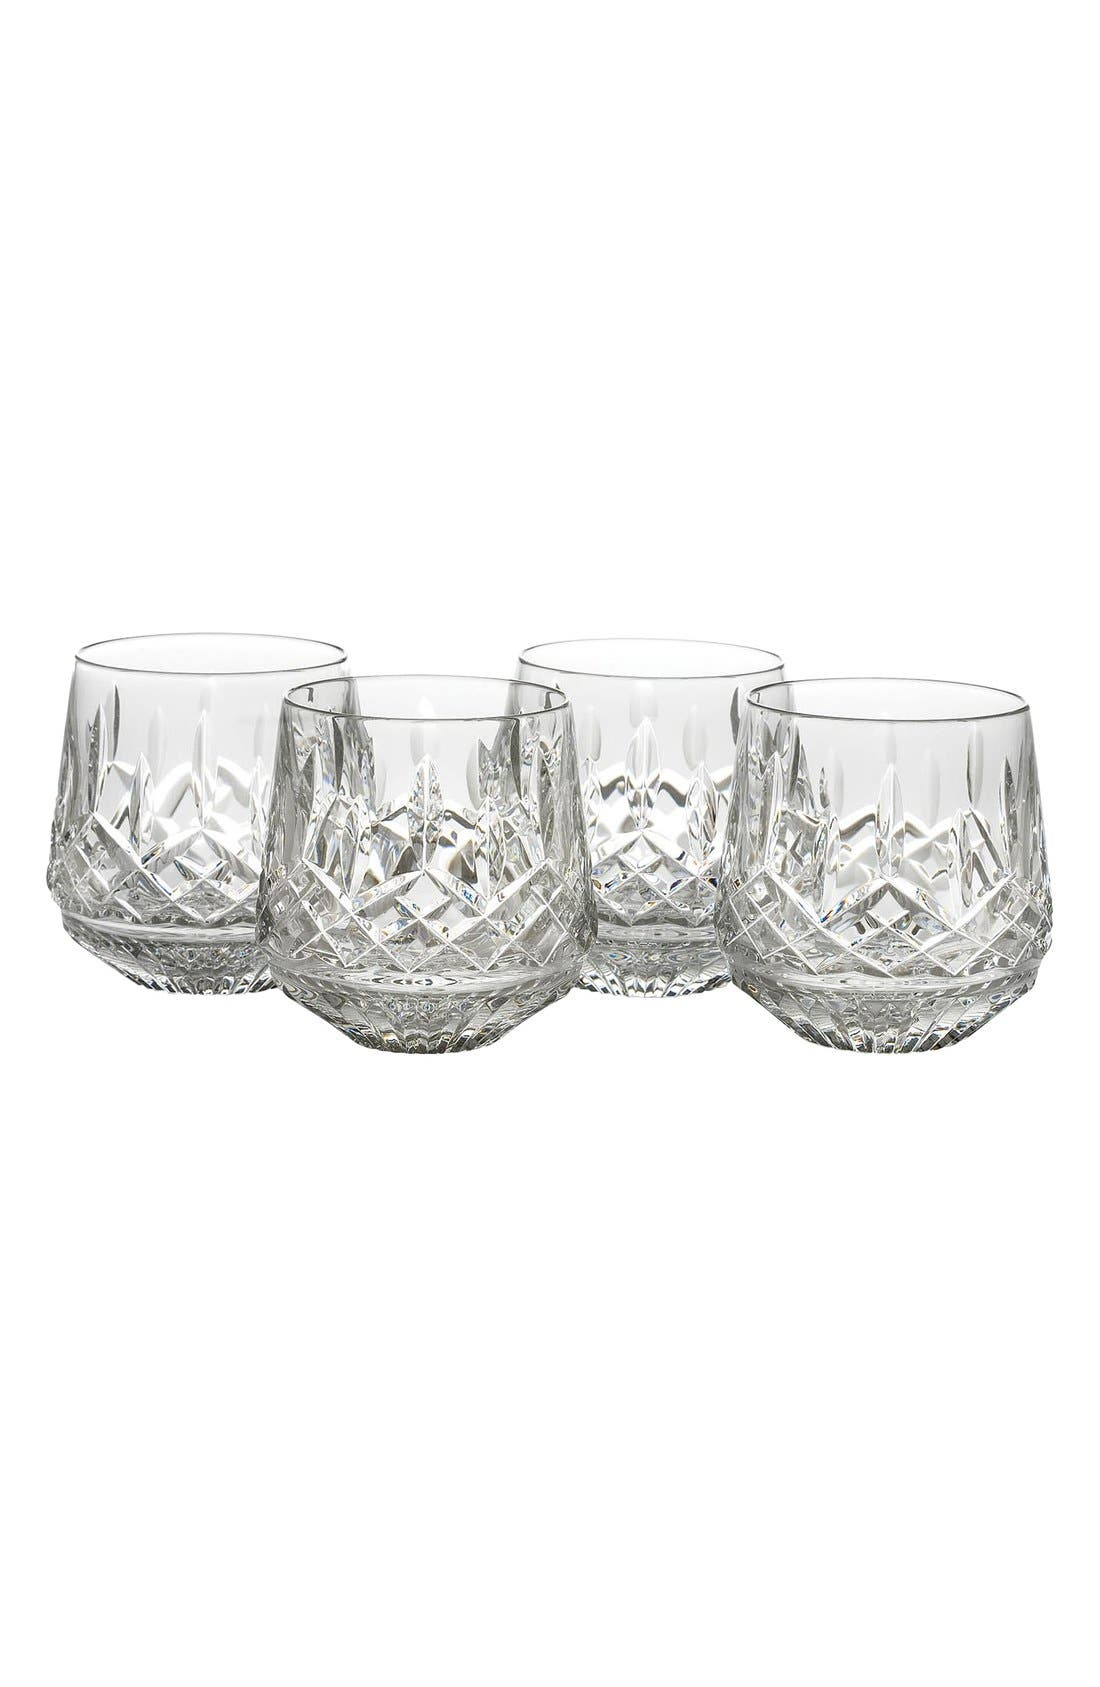 Waterford Lead Crystal Old Fashioned Glasses (Set of 4)